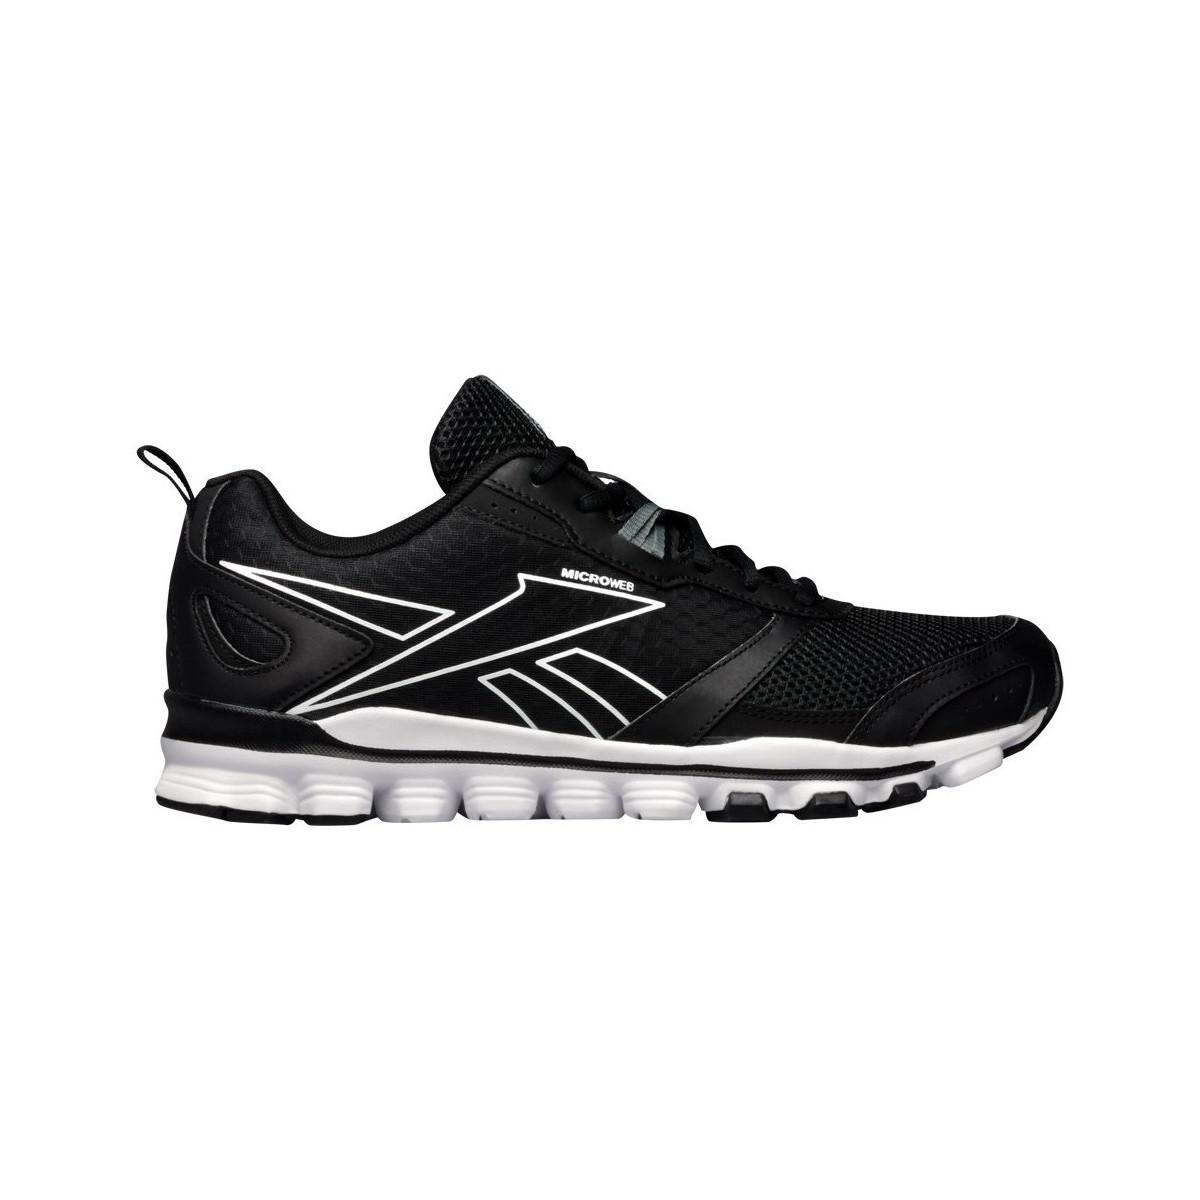 Reebok Hexaffect Run Le Men s Shoes (trainers) In Black in Black for ... 9568c2e23